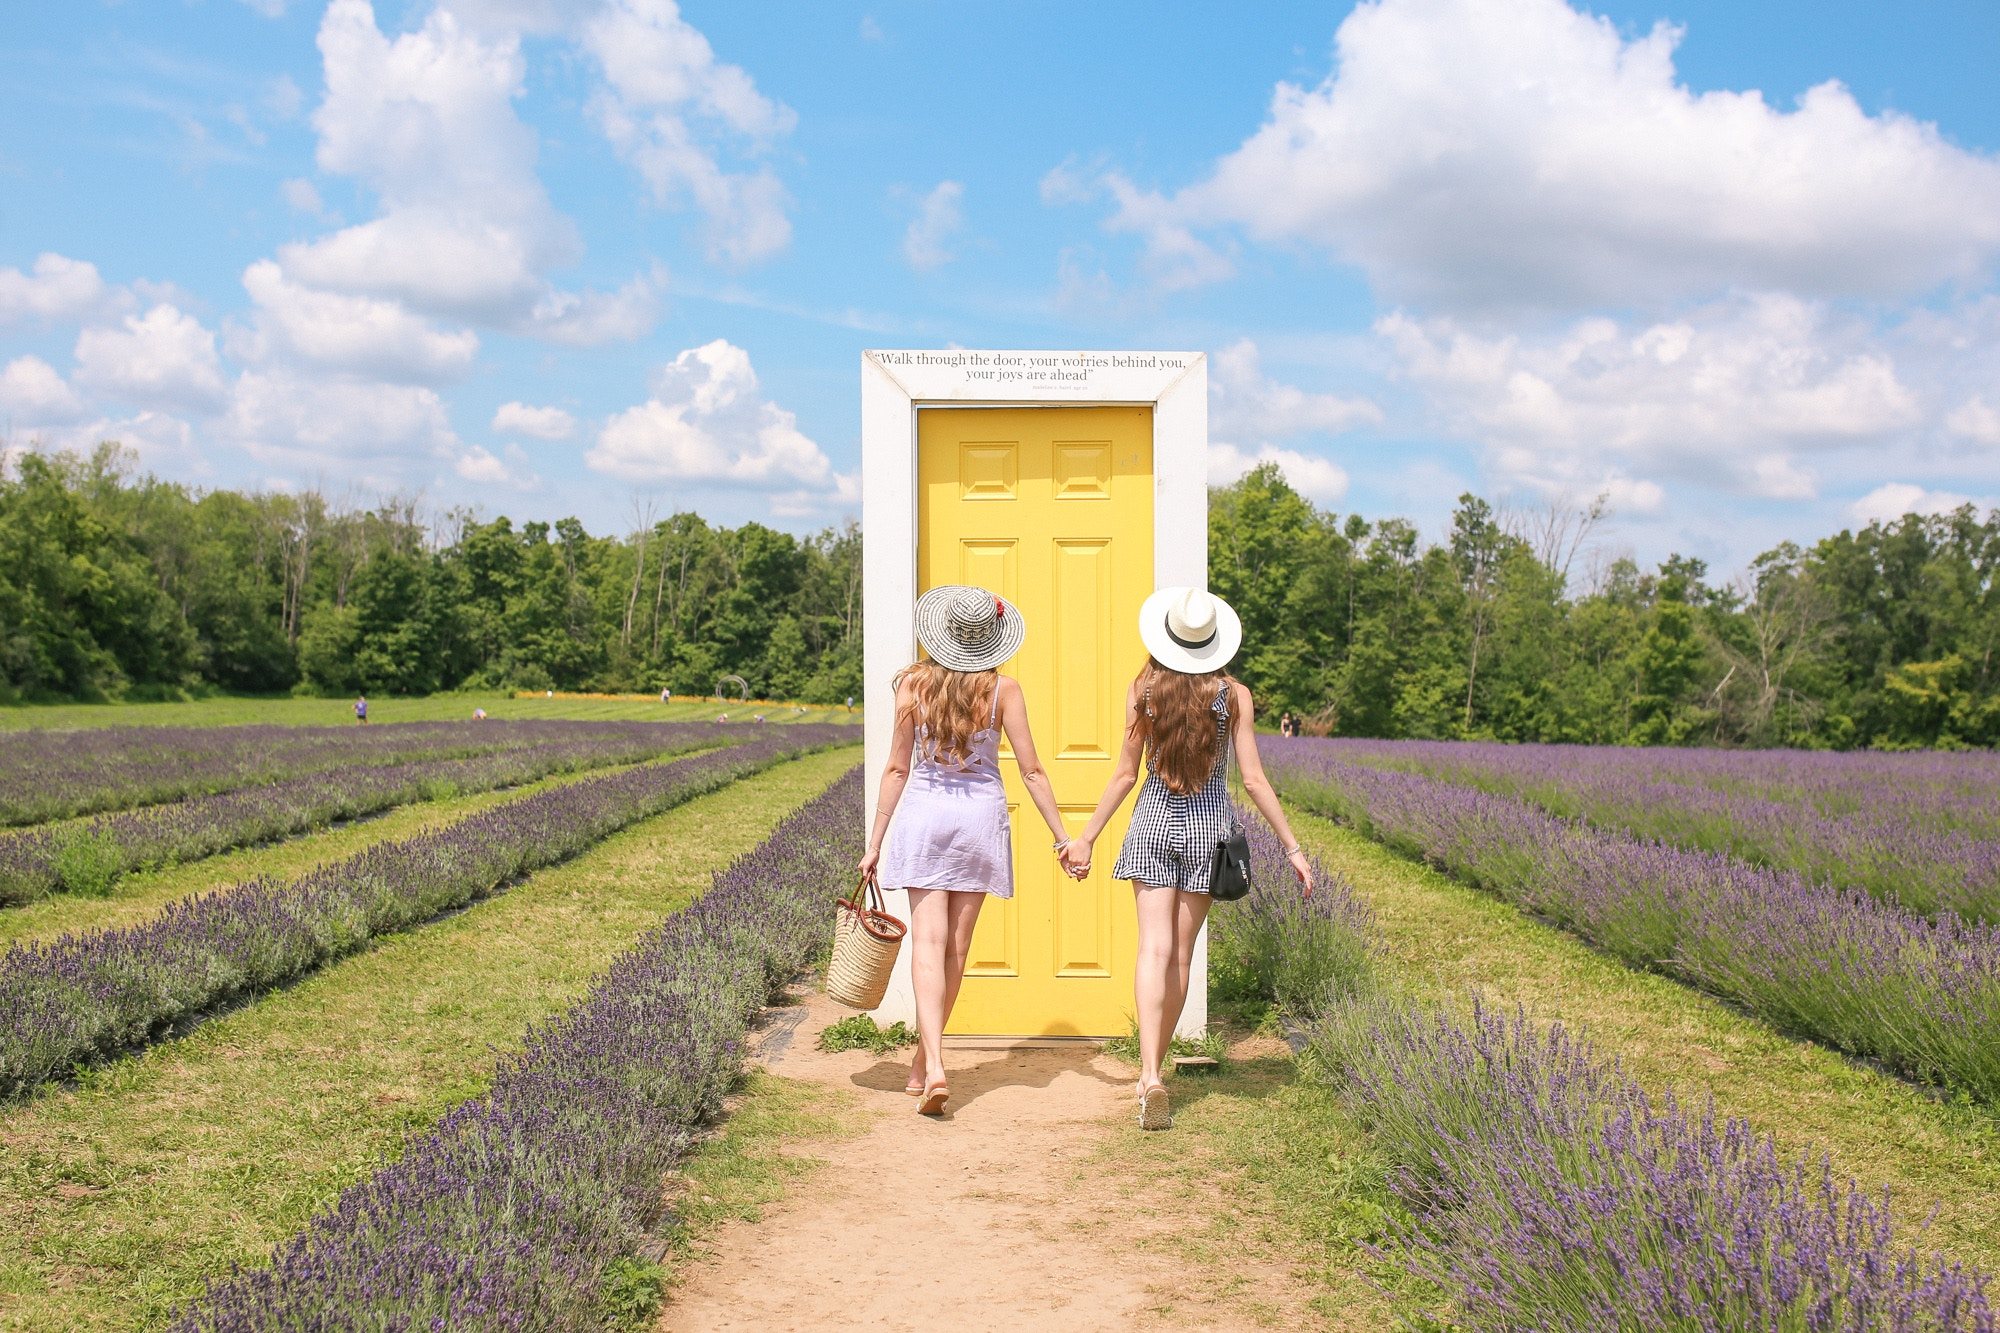 Natalie and Sasha Ast, sister bloggers from Toronto visit to Terre Bleu Lavender Farm